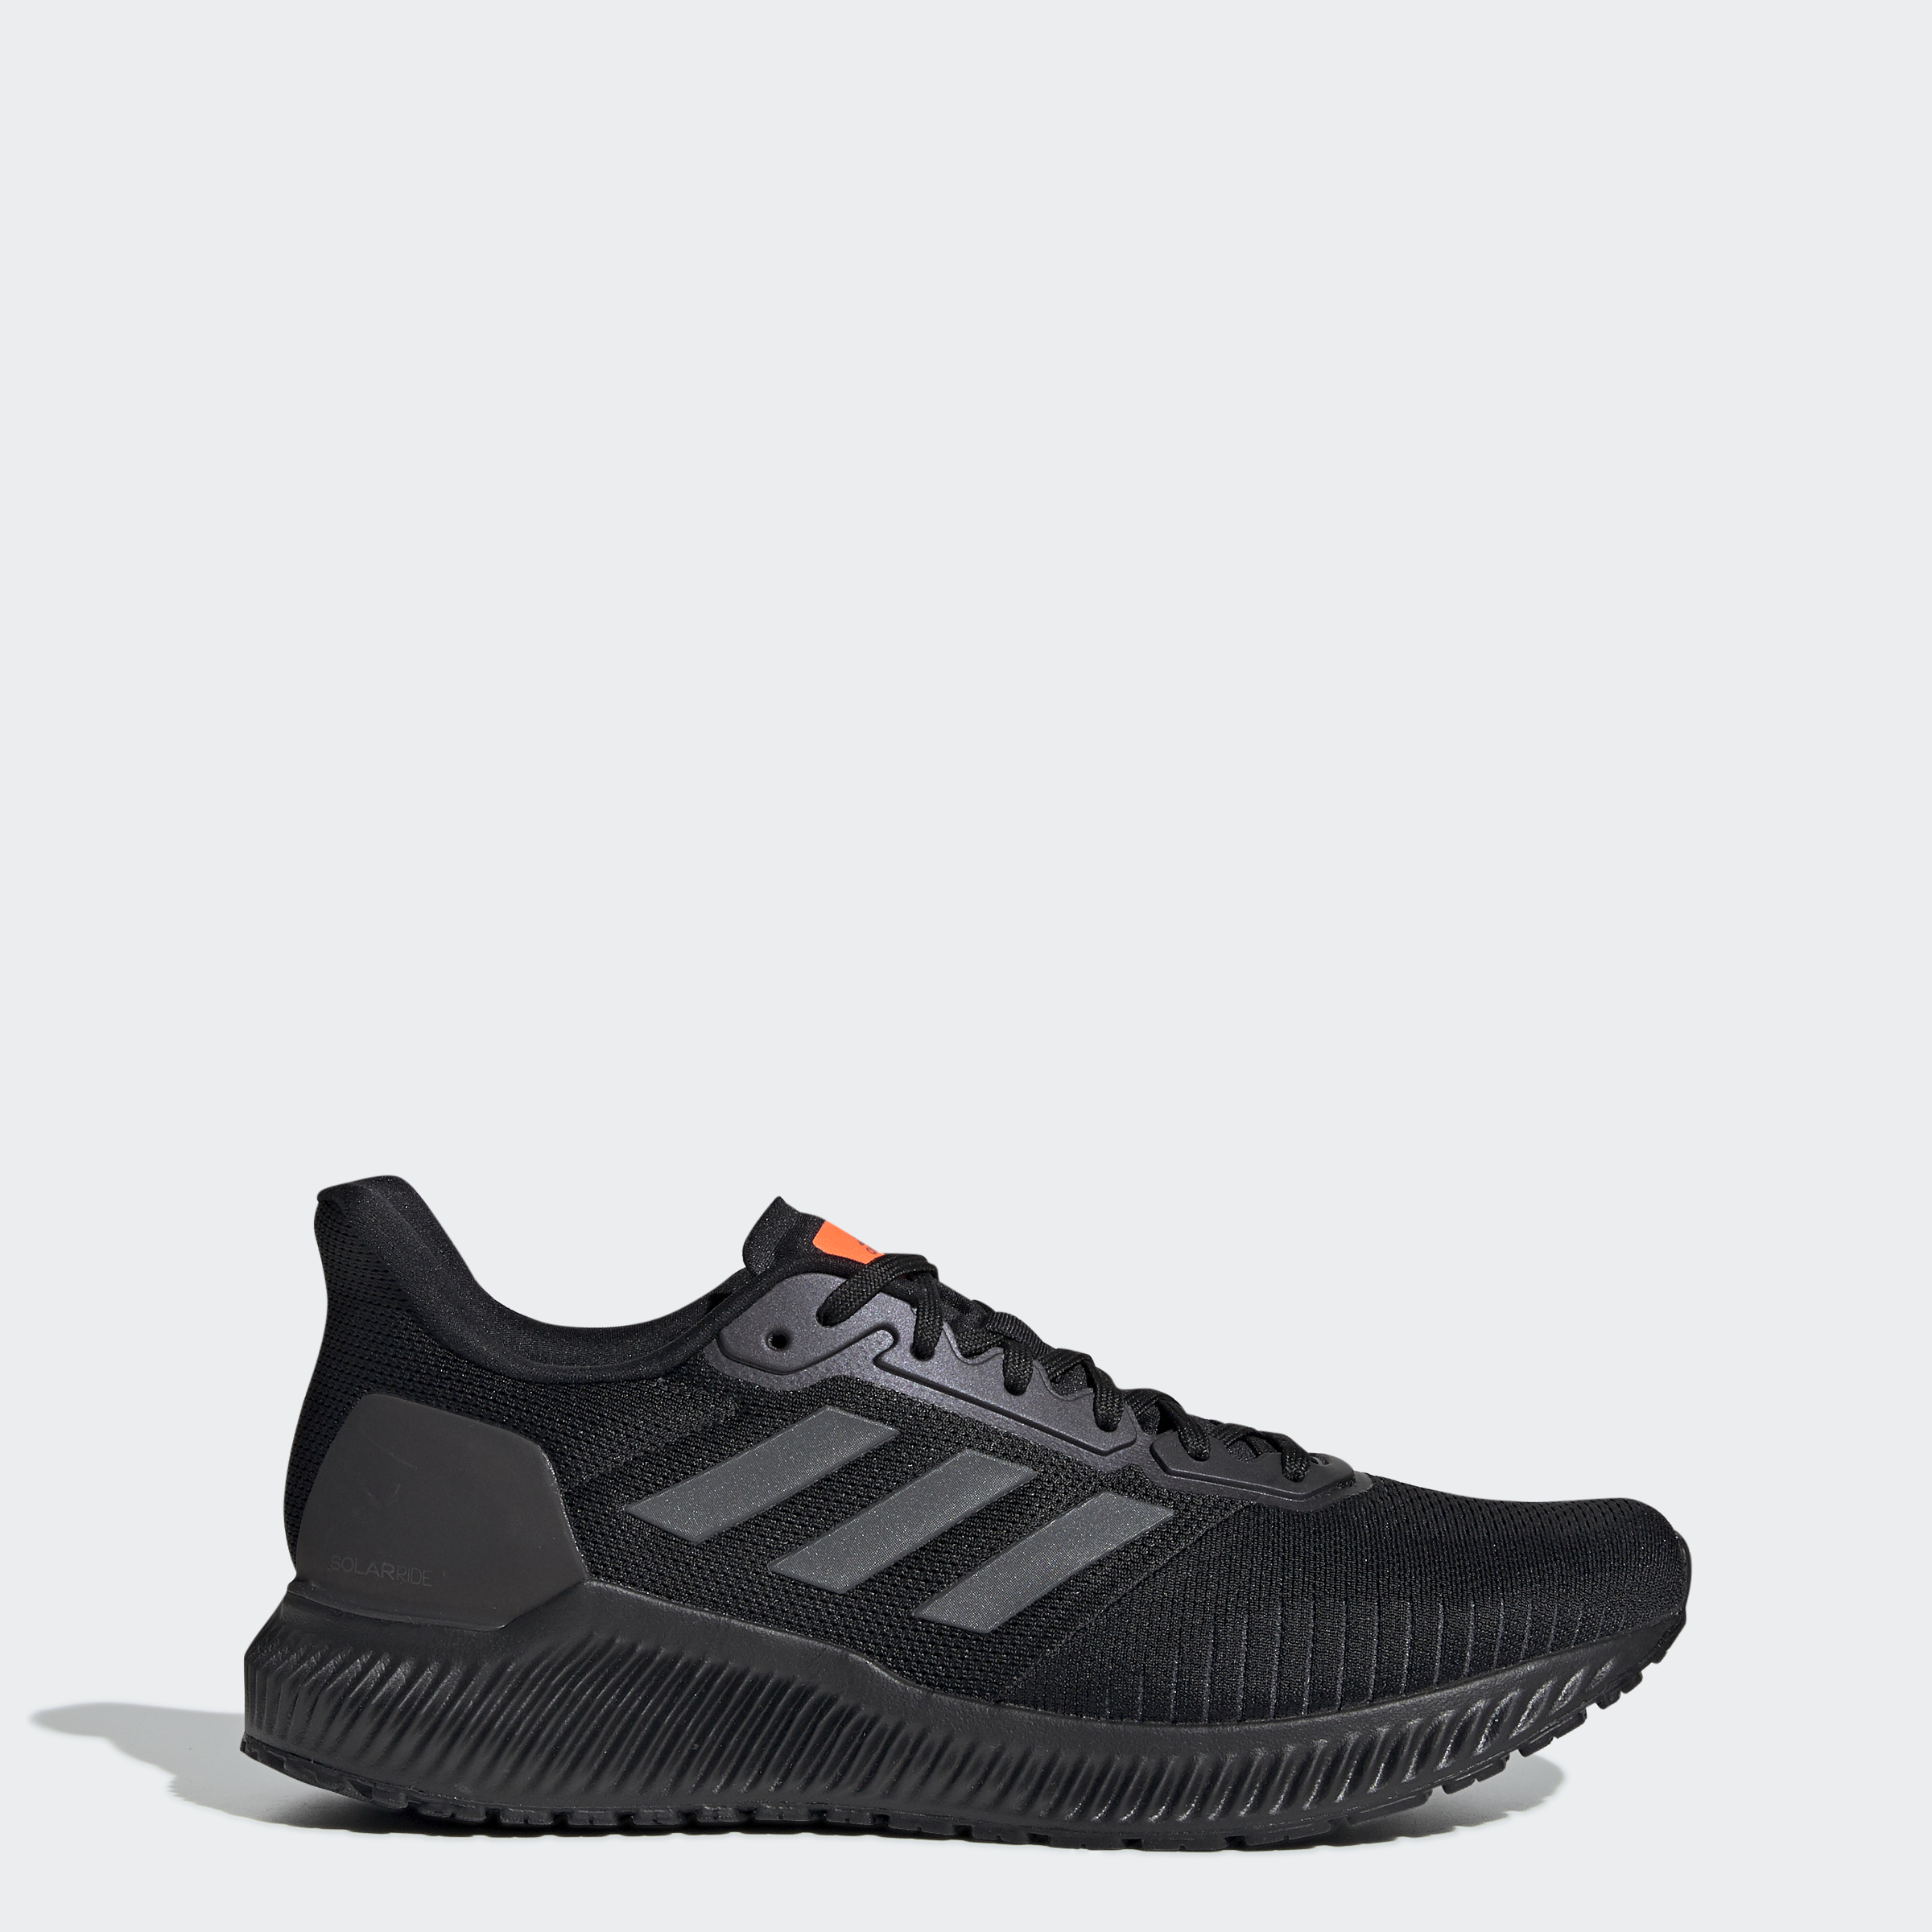 1421 Best MY ADIDAS images in 2019   Adidas, Sneakers